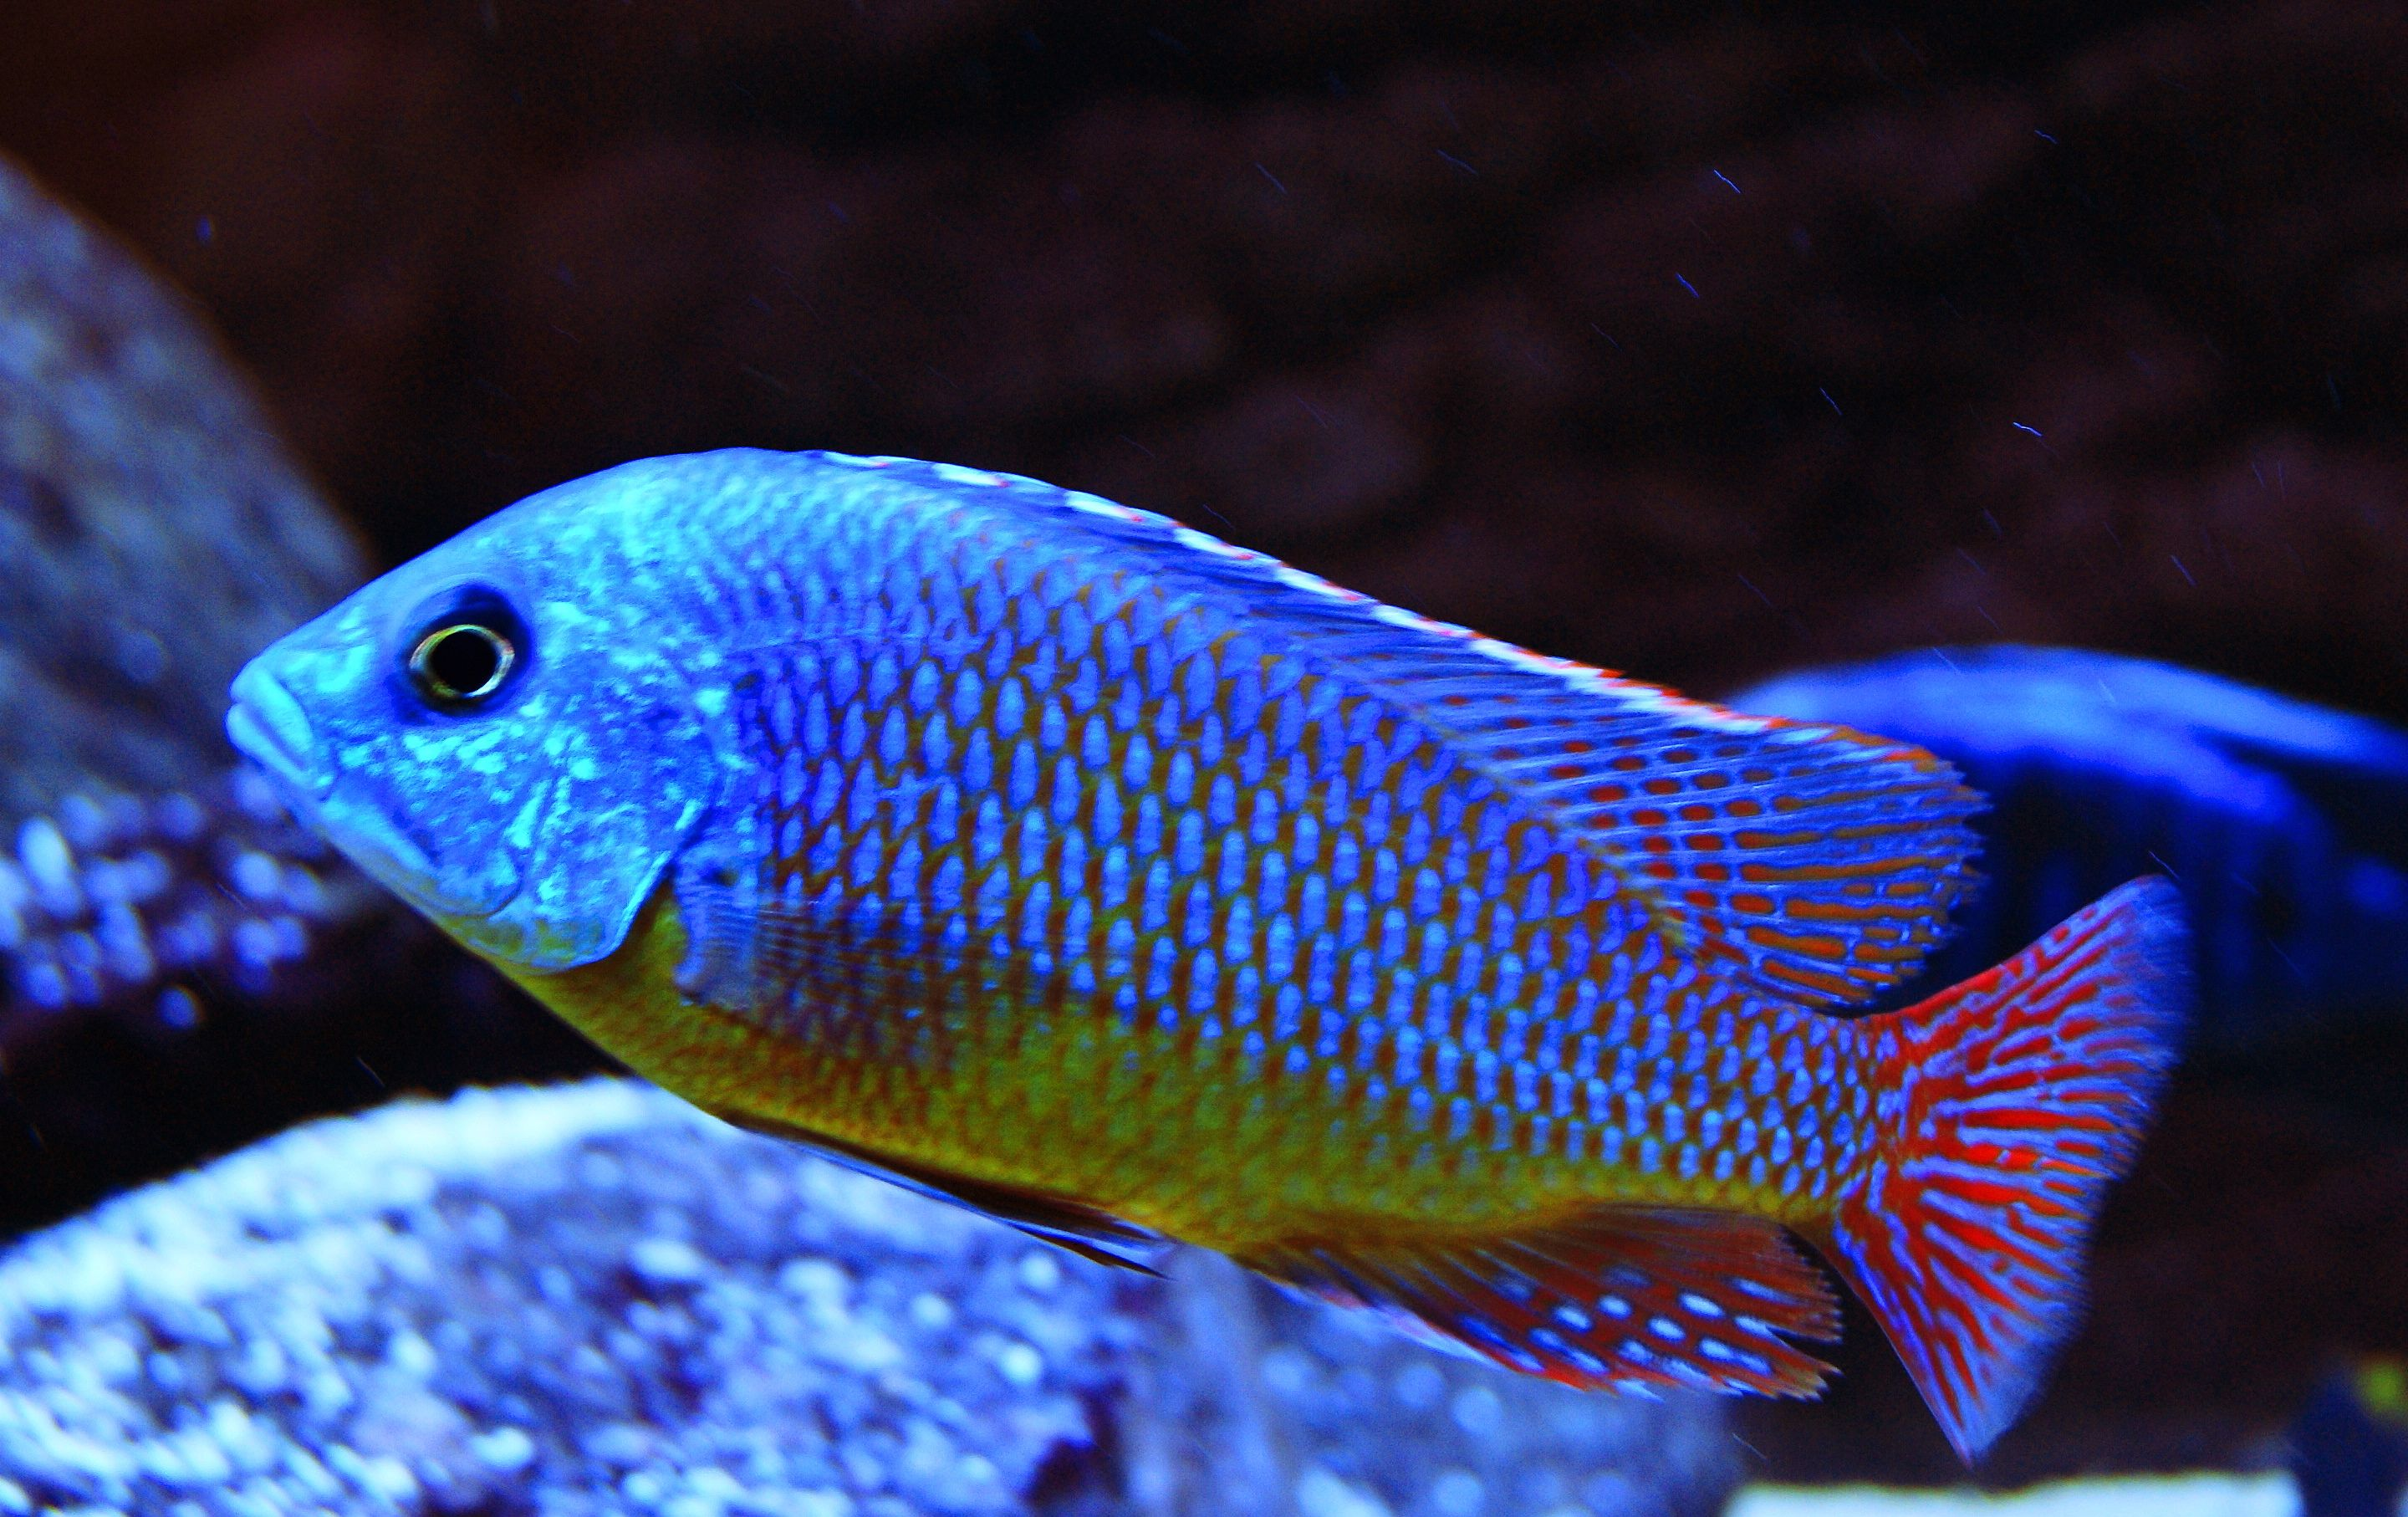 Protomelas Taeniolatus Red Super Red Empress Cichlid Cichlids Aquarium Fish African Cichlids